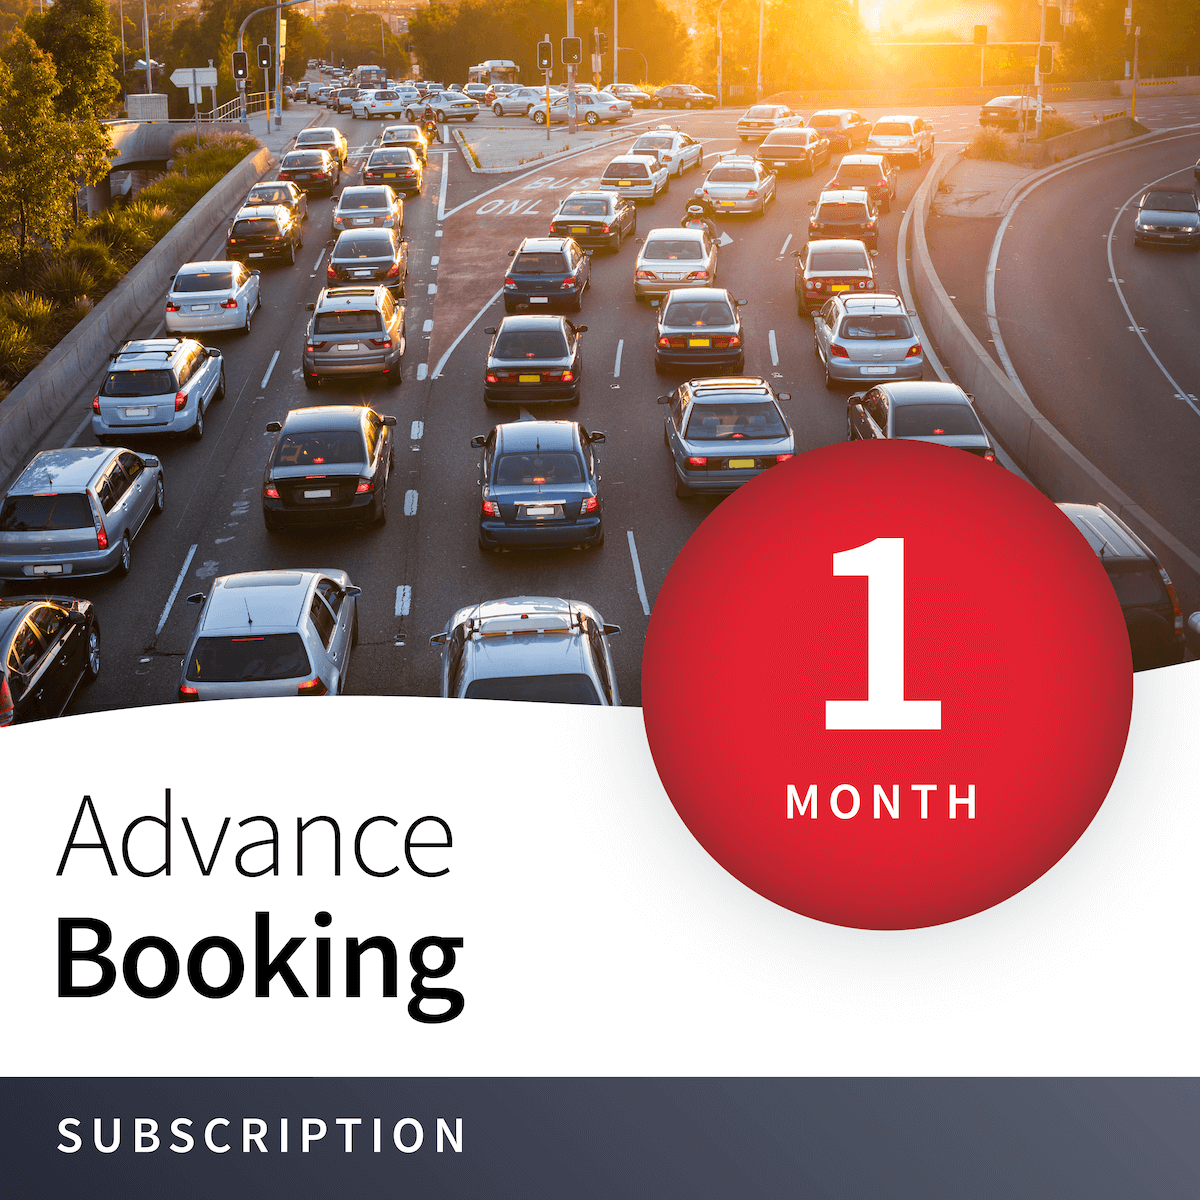 Priority Advance Booking - 1 Month 1